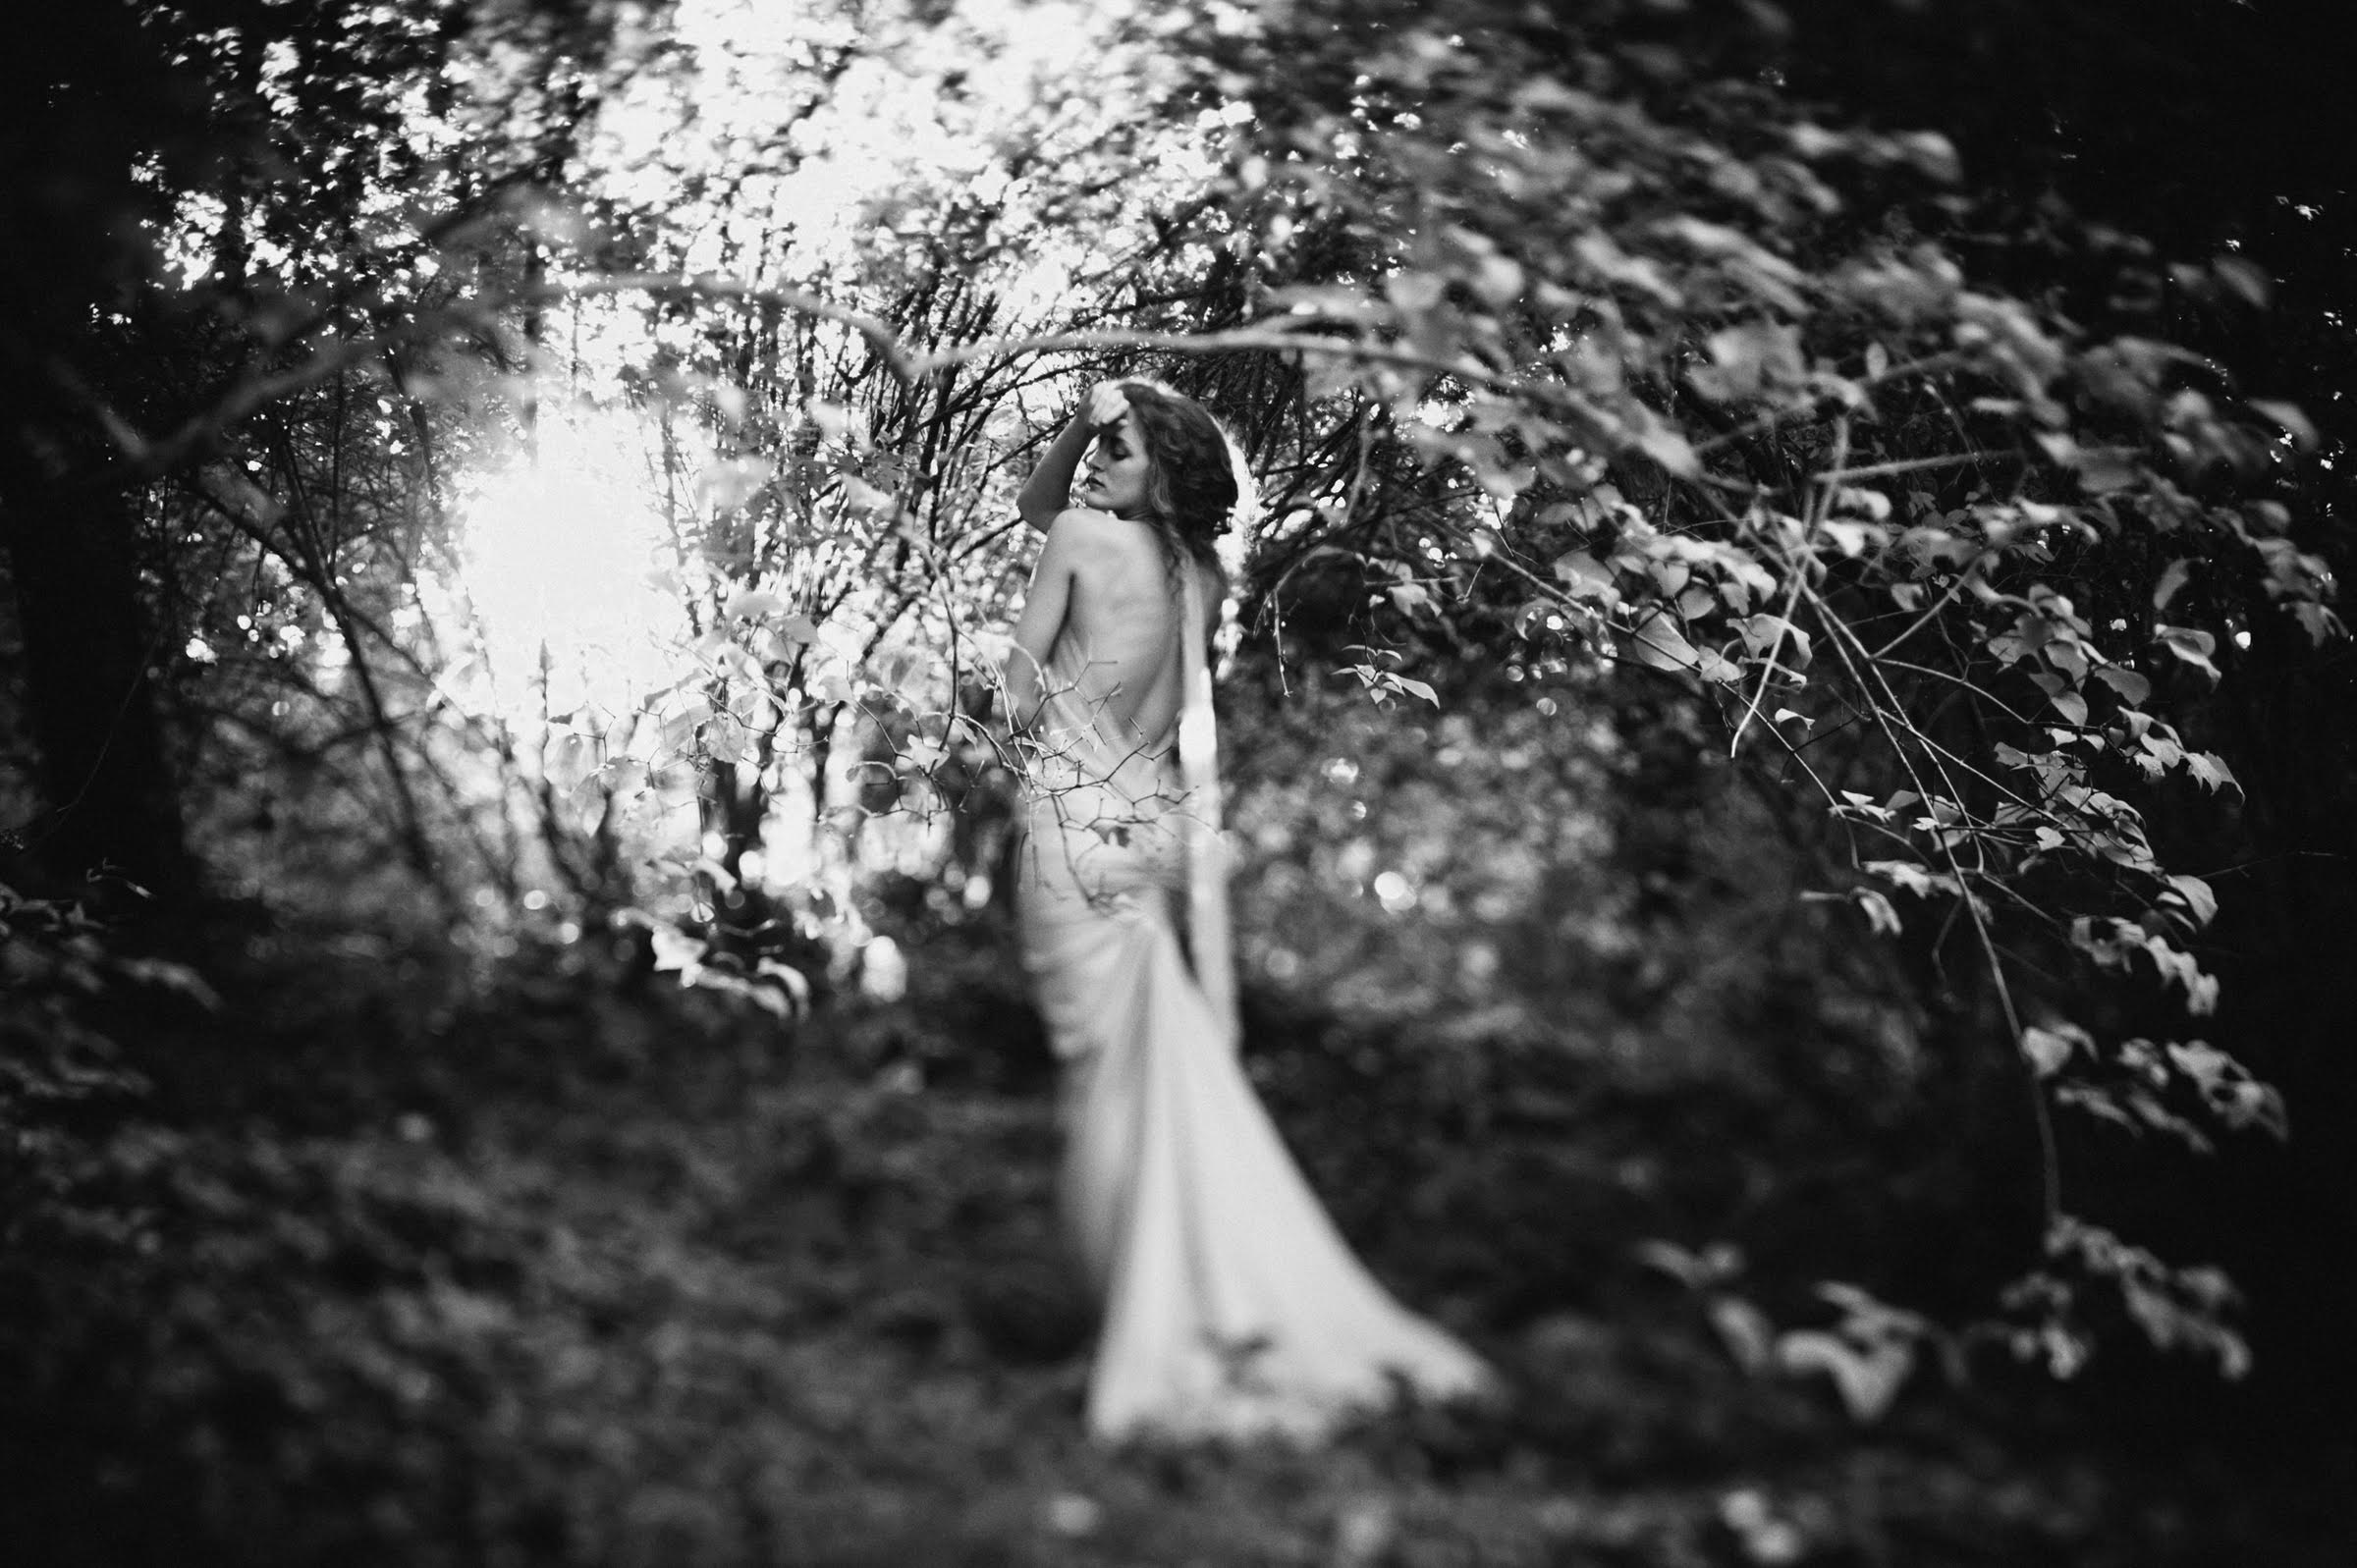 ethereal-bridal-portrait - photo by Richard Israel Photography